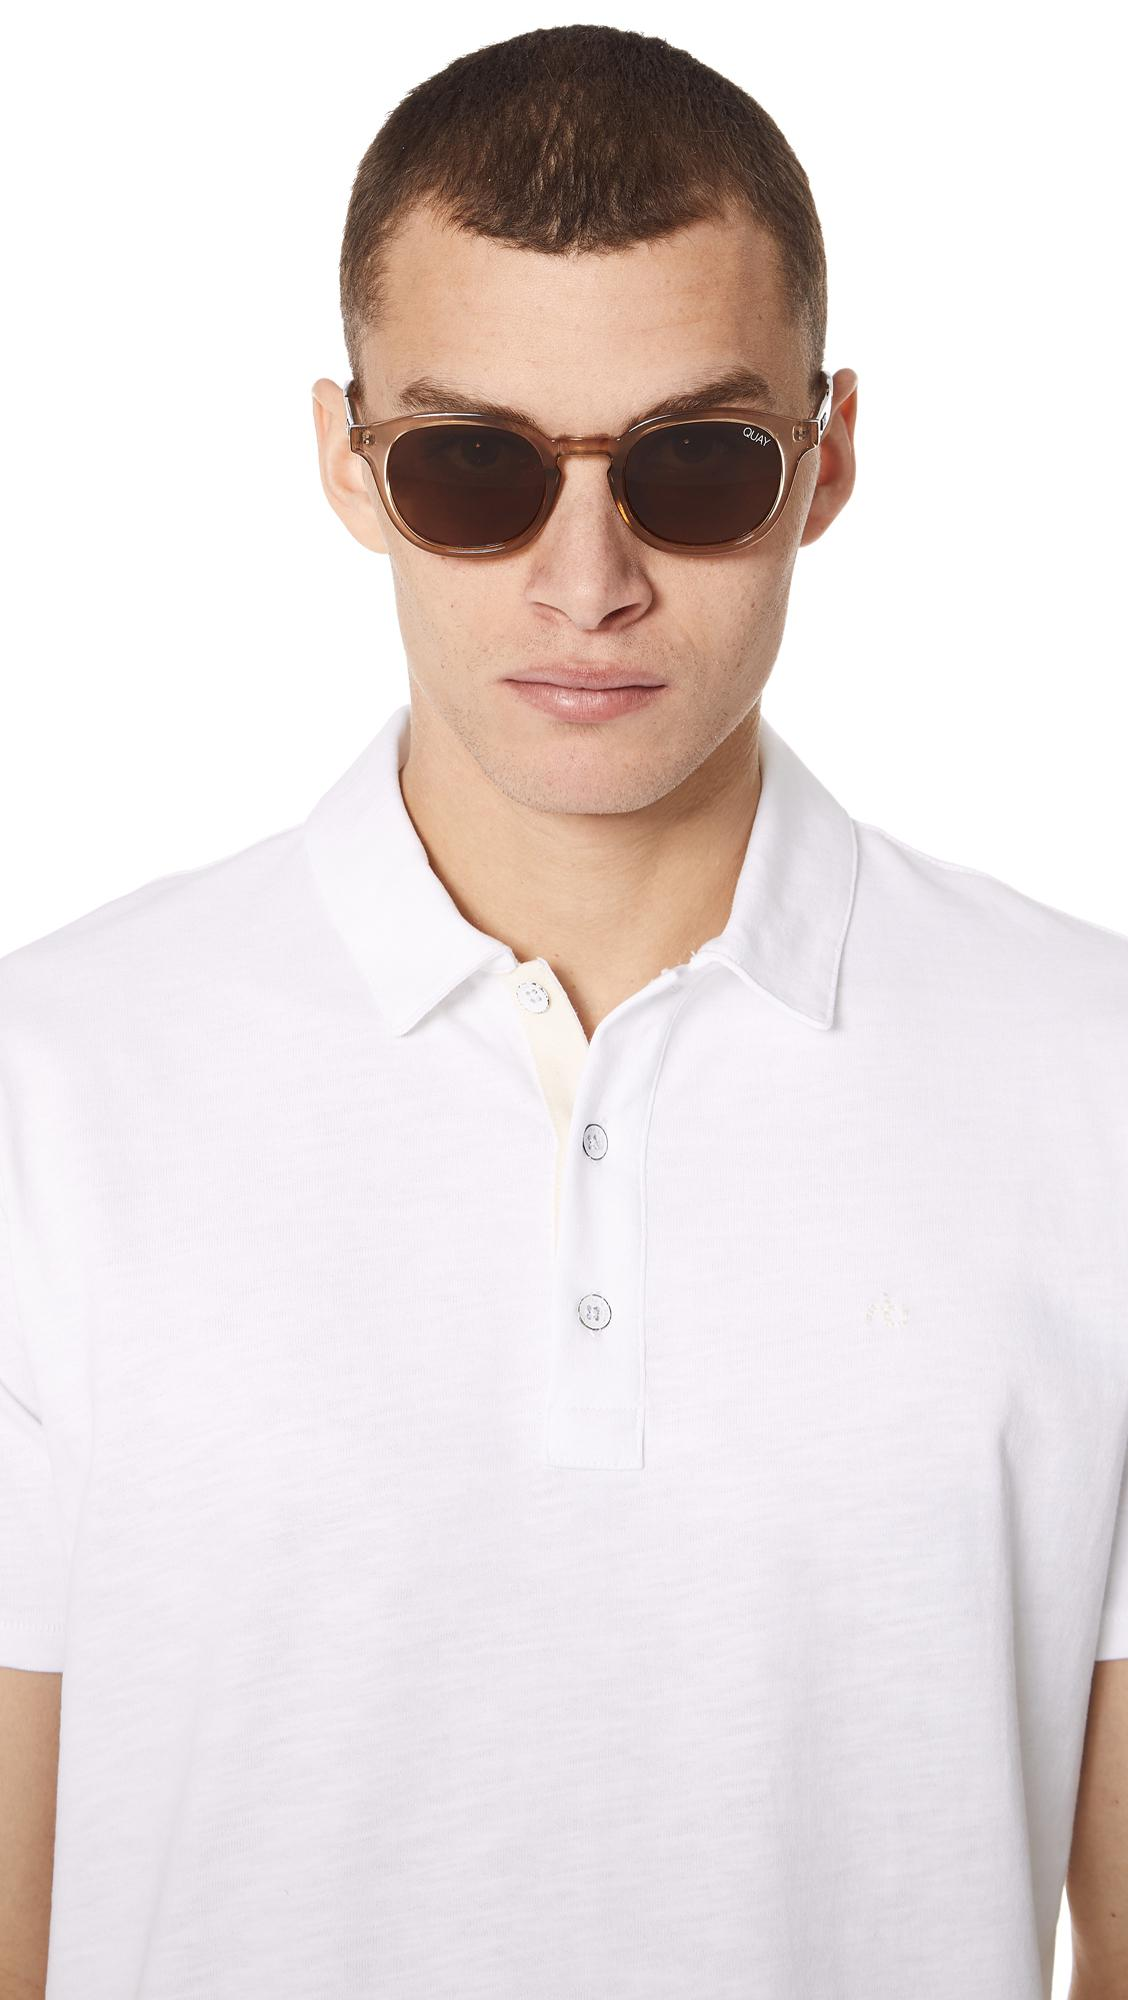 Quay Walk On Toffee Sunglasses With Brown Lens for Men